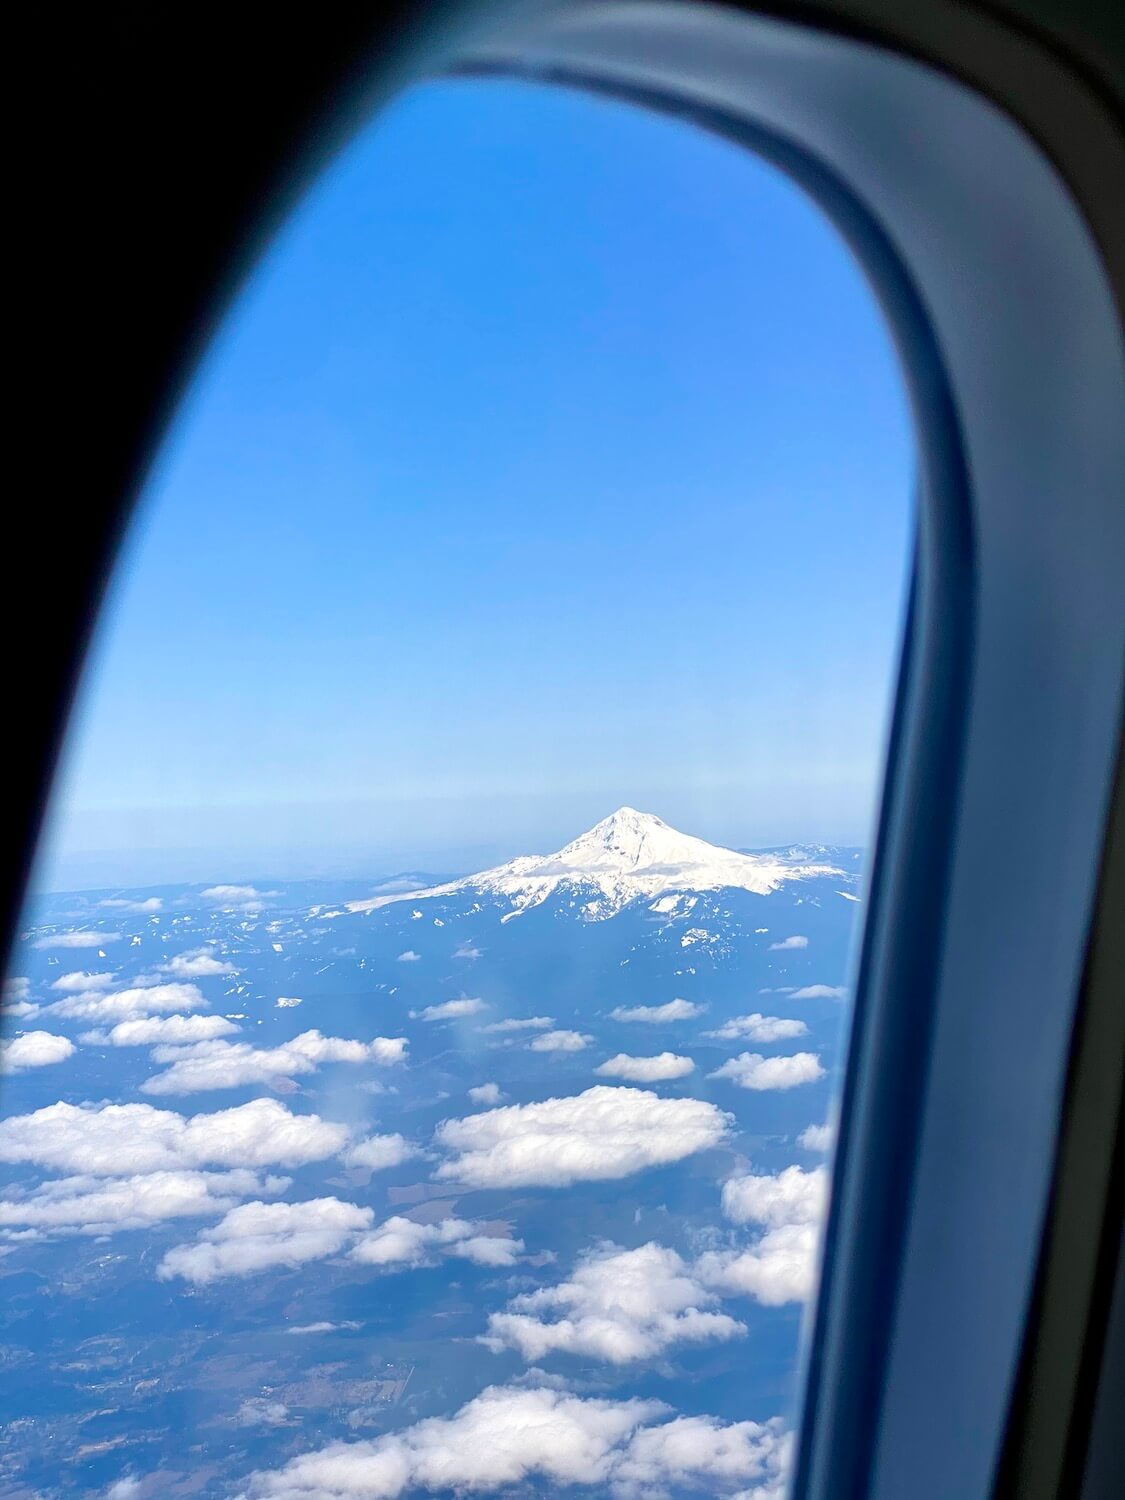 The view out of an airplane window highlights the symmetrical shape of the snow covered peak of Mt. Hood on an airplane flight to Central Oregon.